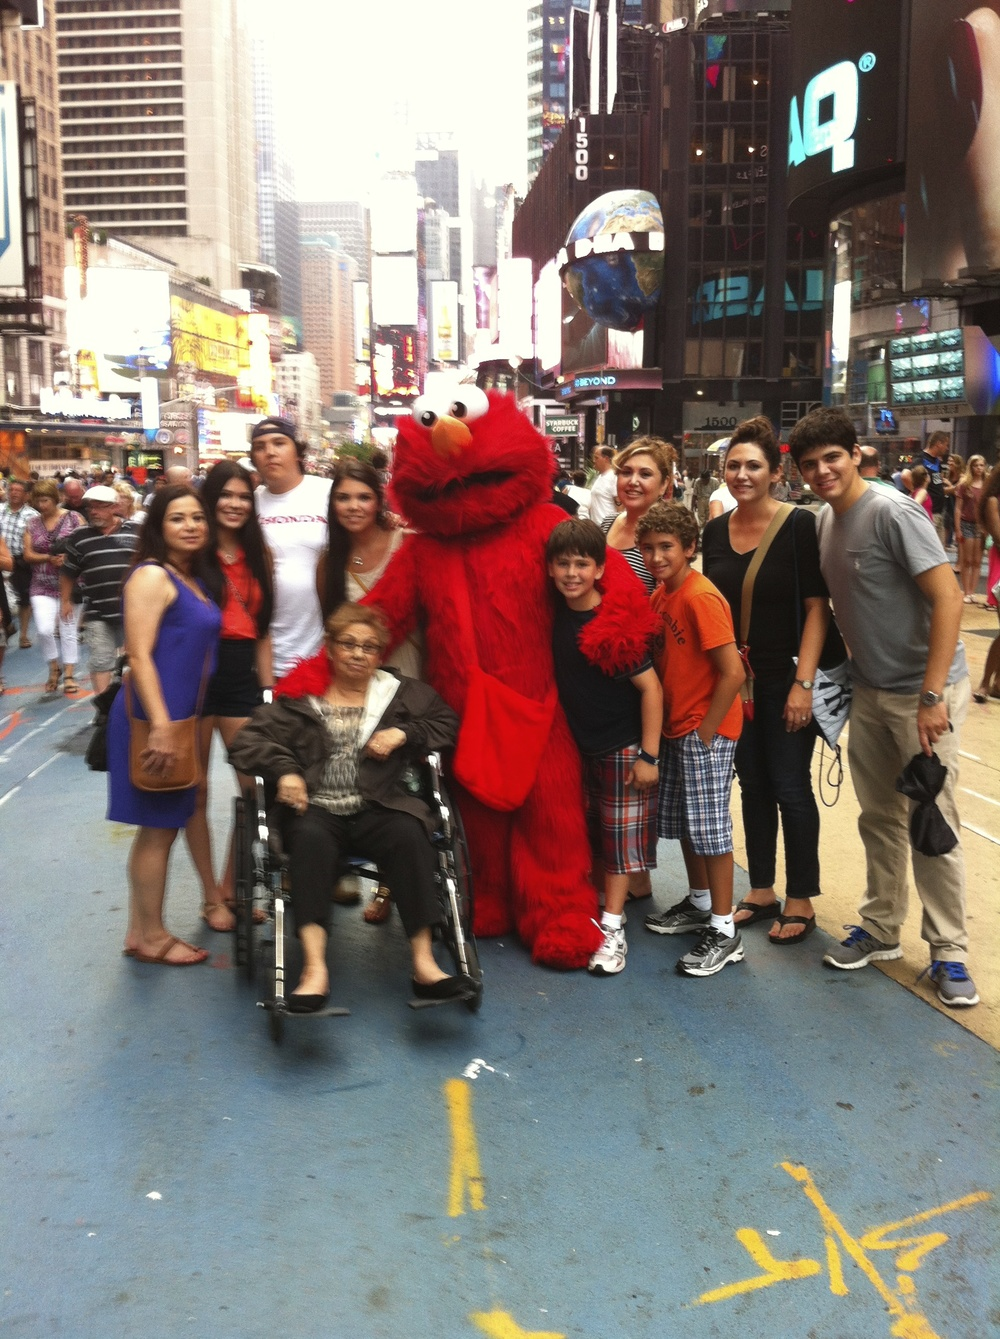 i have no idea why elmo was in the picture, everyone was confused whenever we finished taking this picture! lol